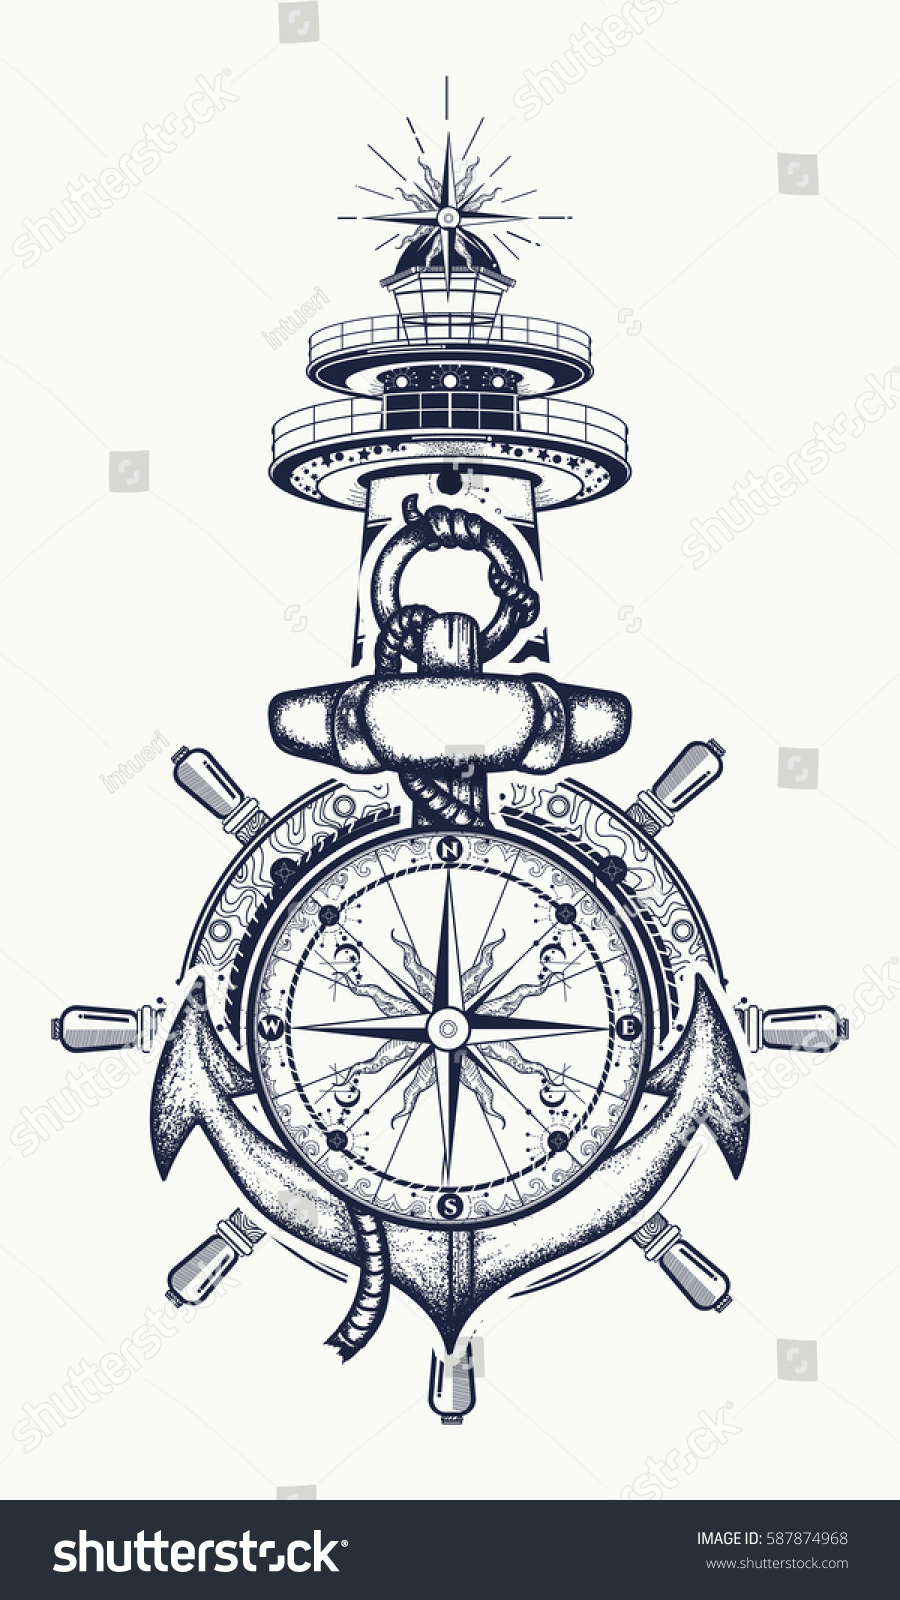 Johnny Depp With James Lipton likewise Spartan Helmet Crossed Swords Shield Symbol 626449559 moreover Aries Mandala Tattoo Designhorn Sheep Line 411401935 further Always Be A Little Kinder Than Necessary in addition Anchor Steering Wheel  pass Lighthouse Tattoo 587874968. on news boho book